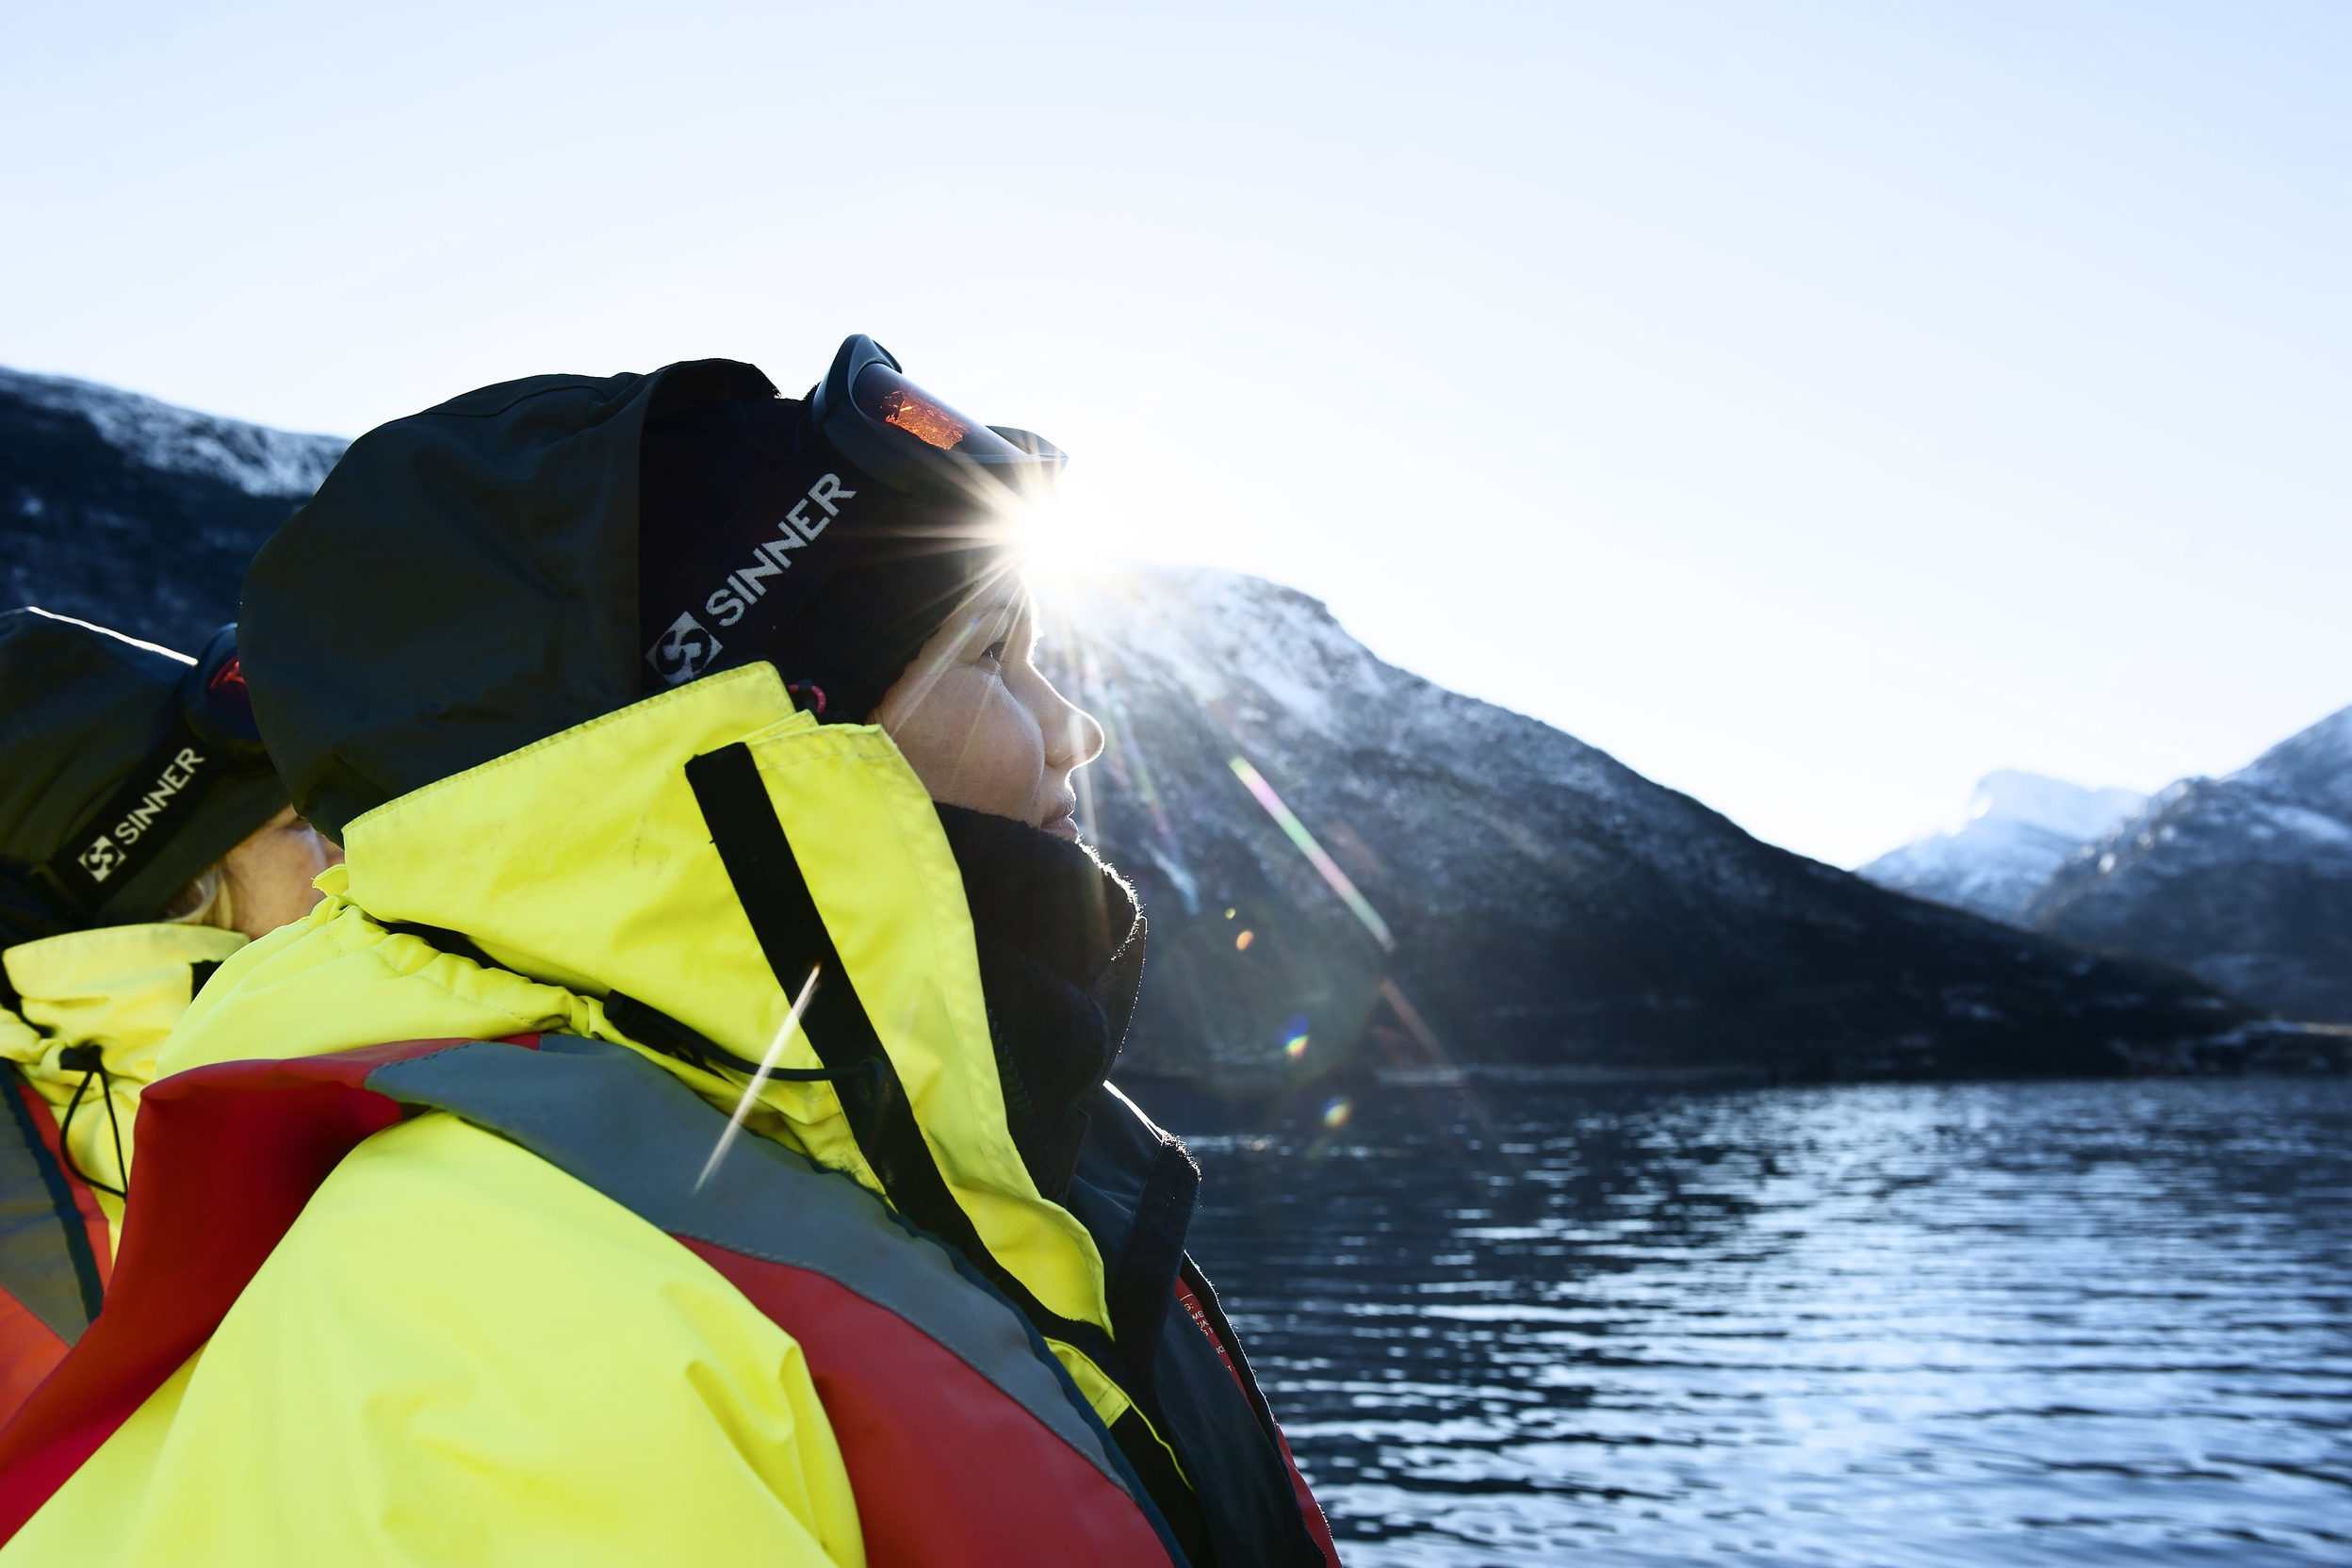 practical information - Time/period: 2 hours and 30 min. (Flåm - Styvi - Undredal - Flåm)Nov 1st. 2019 - March 31st. 2020: 11:45 - 14:15Meet 30 minutes prior to departure in the FjordSafari reception to check in and get fully dressed (located by the train station)Price: Adults NOK 810 / Children NOK 610 (children over 4 years)